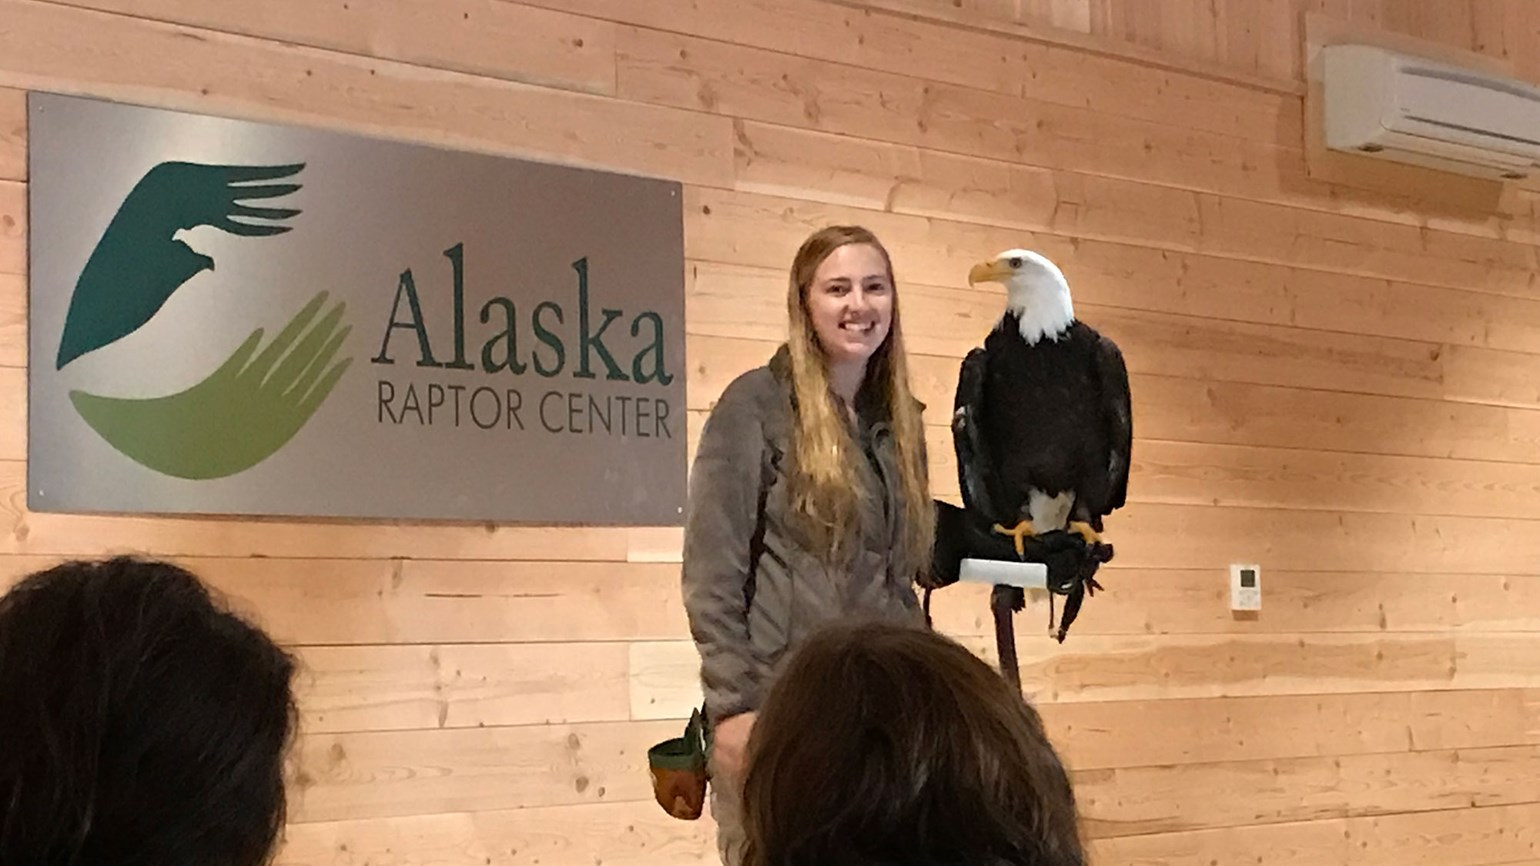 New options for experiencing Alaska's rainforests and raptors